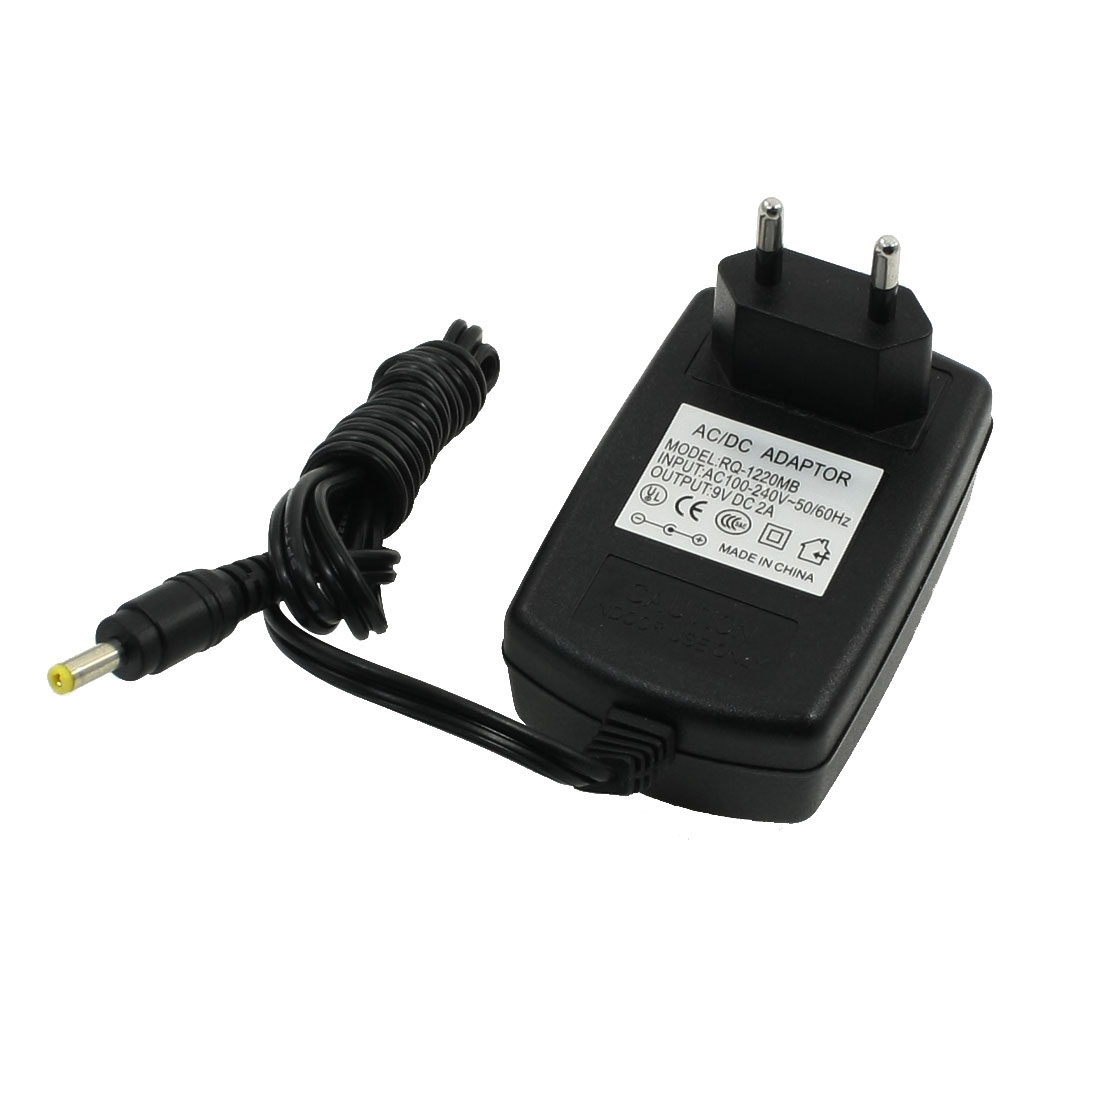 EU Plug 100-240VAC to 4.0x1.7mm 9VDC 2A AC/DC Power Adapter Converter